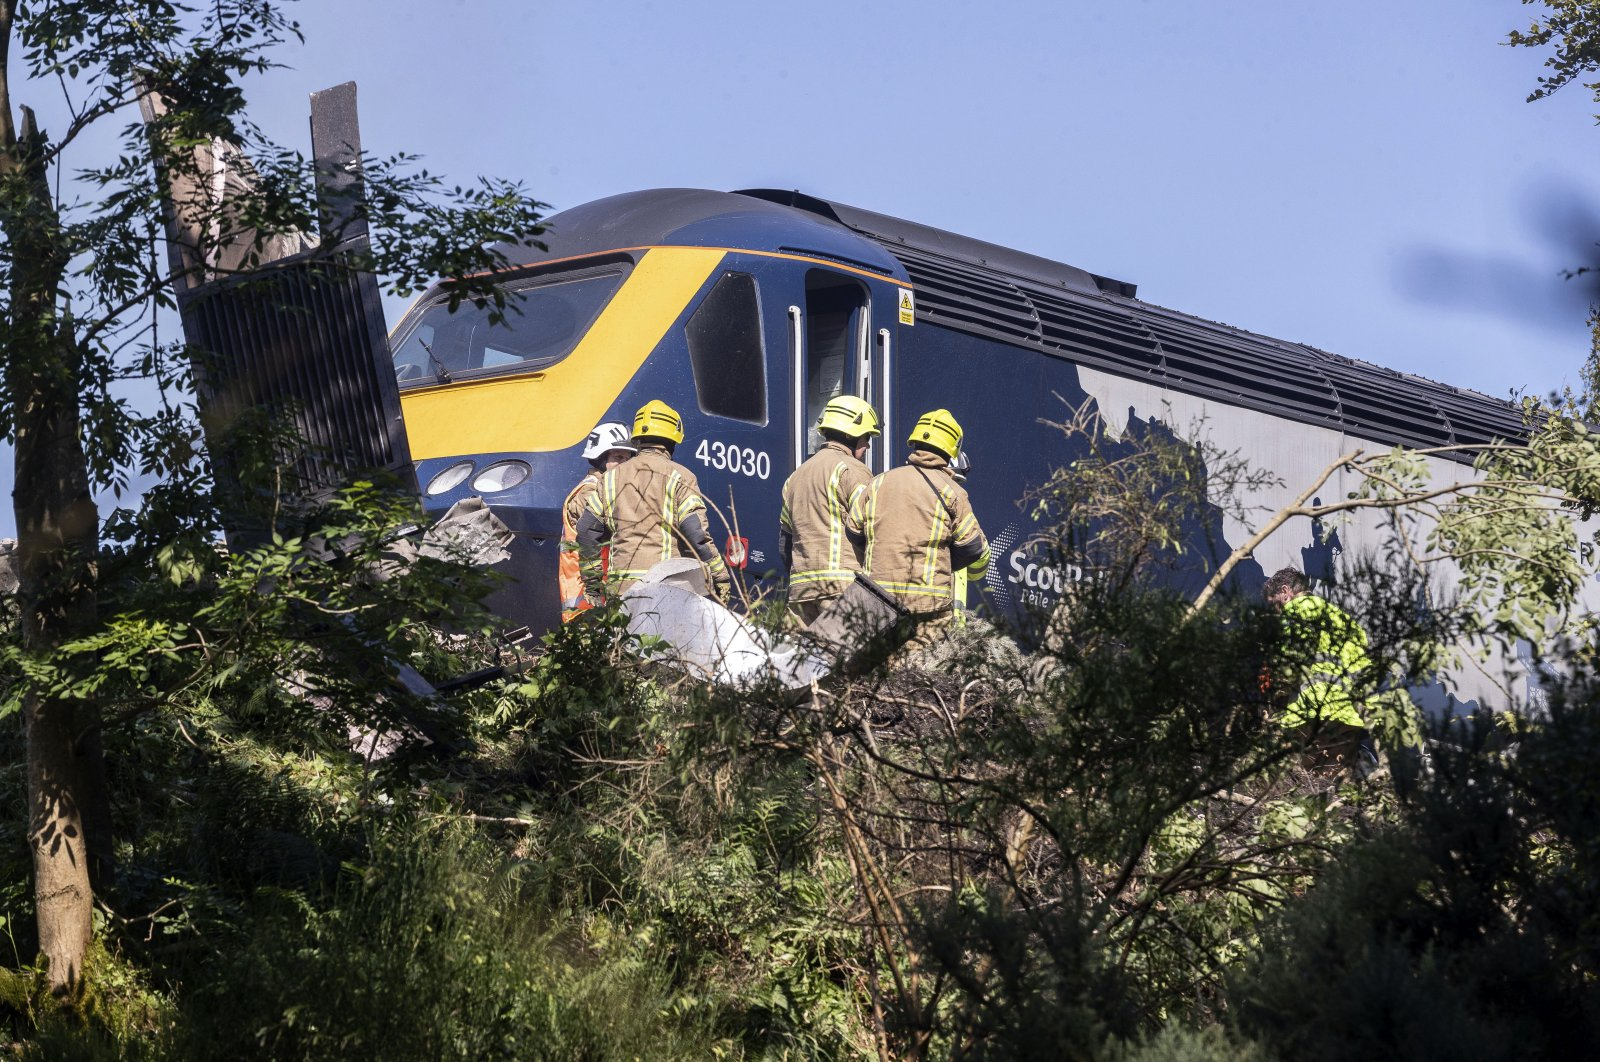 Emergency services attend the scene of a derailed train in Stonehaven, Scotland, Aug. 12, 2020. (AP Photo)